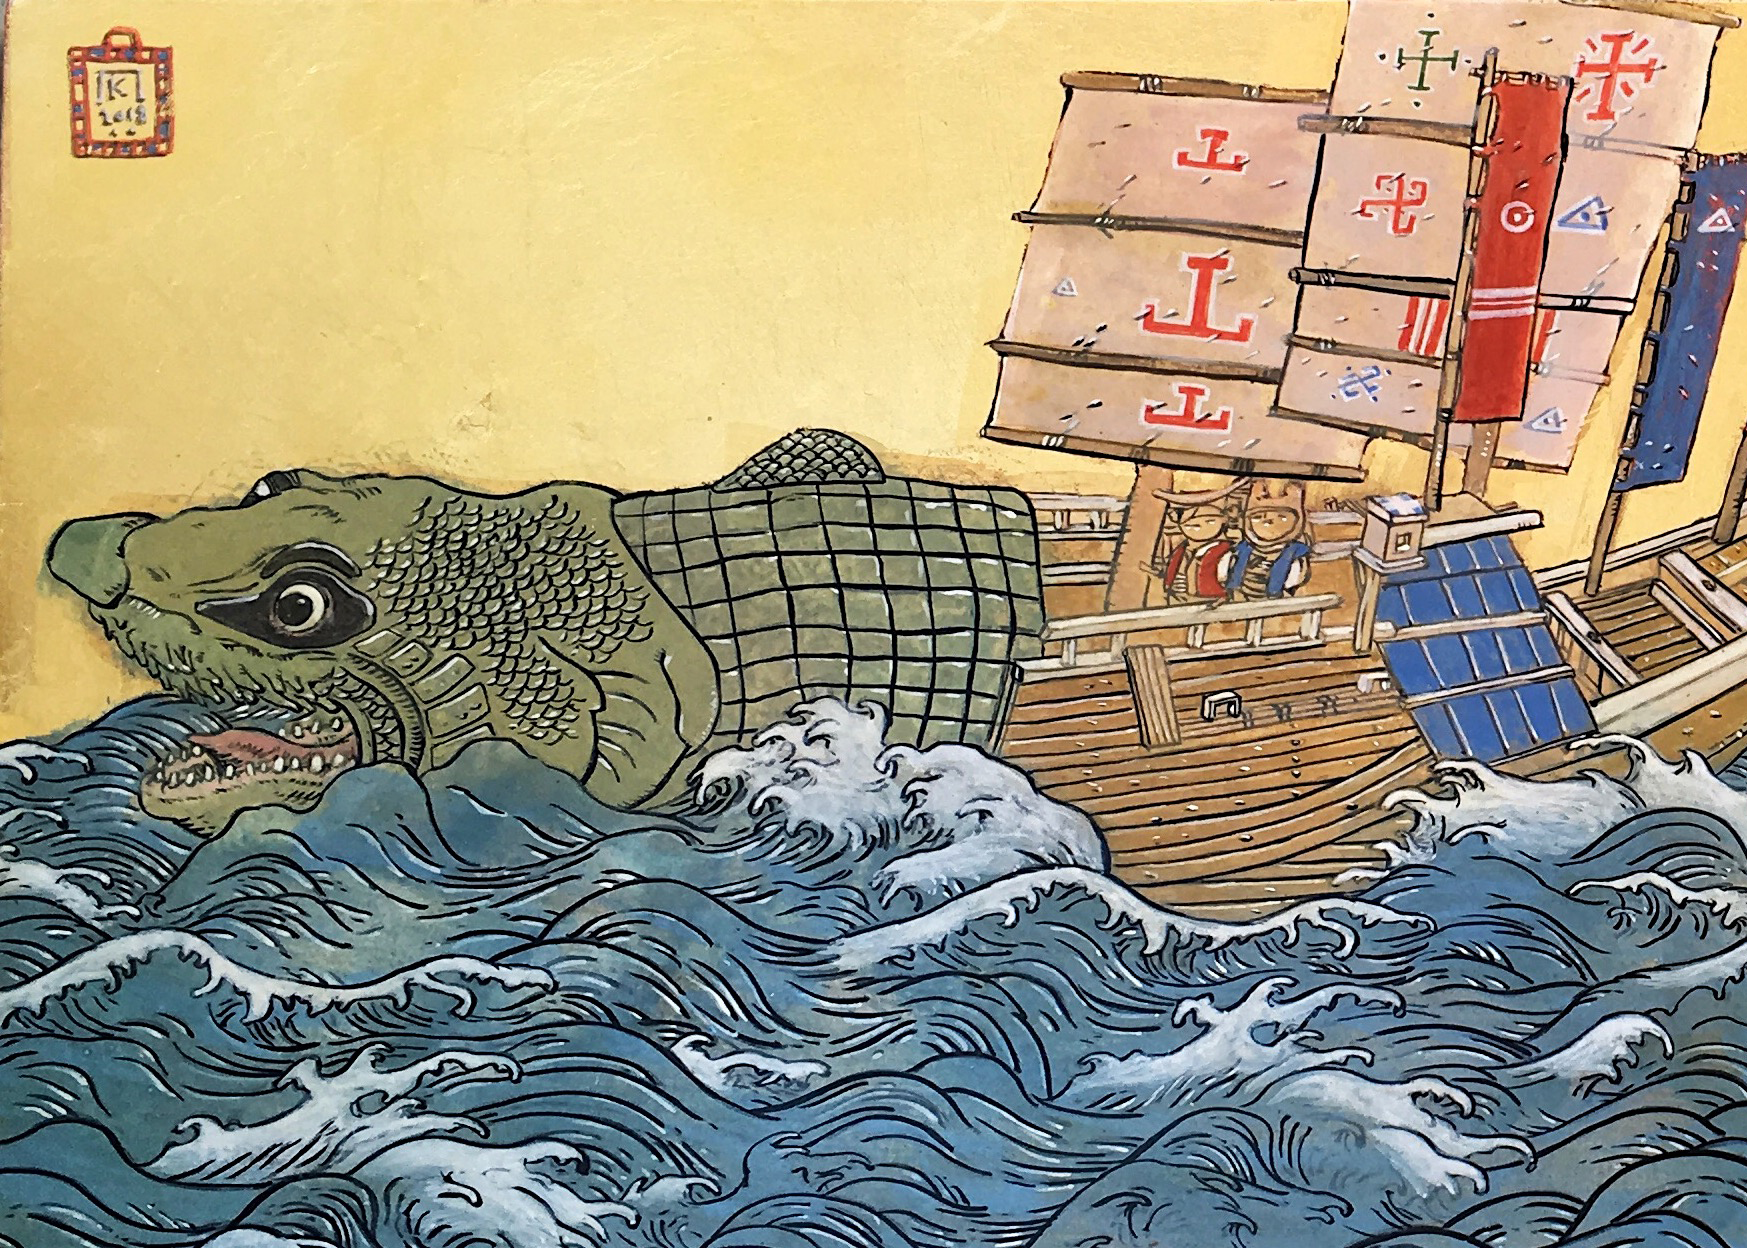 KP_Floating Thoth And Two Boatfish_25x70cm_Detail 2.jpg